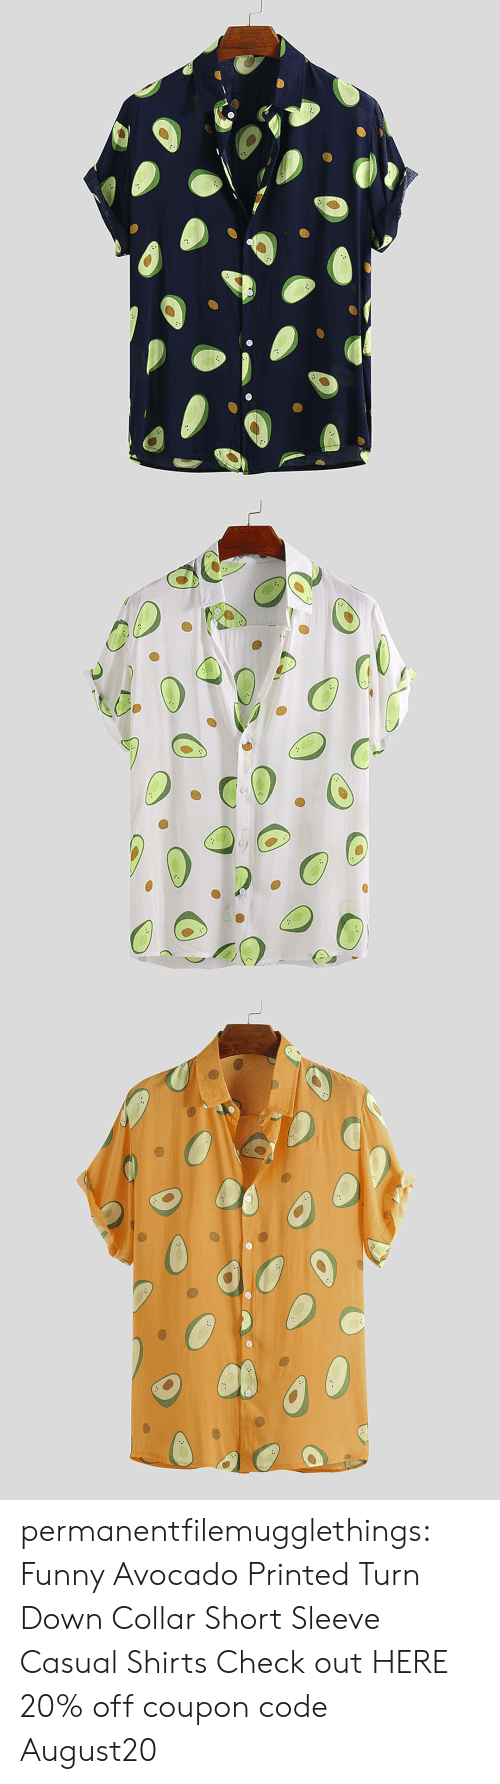 Avocado: permanentfilemugglethings: Funny Avocado Printed Turn Down Collar Short Sleeve Casual Shirts Check out HERE 20% off coupon code:August20